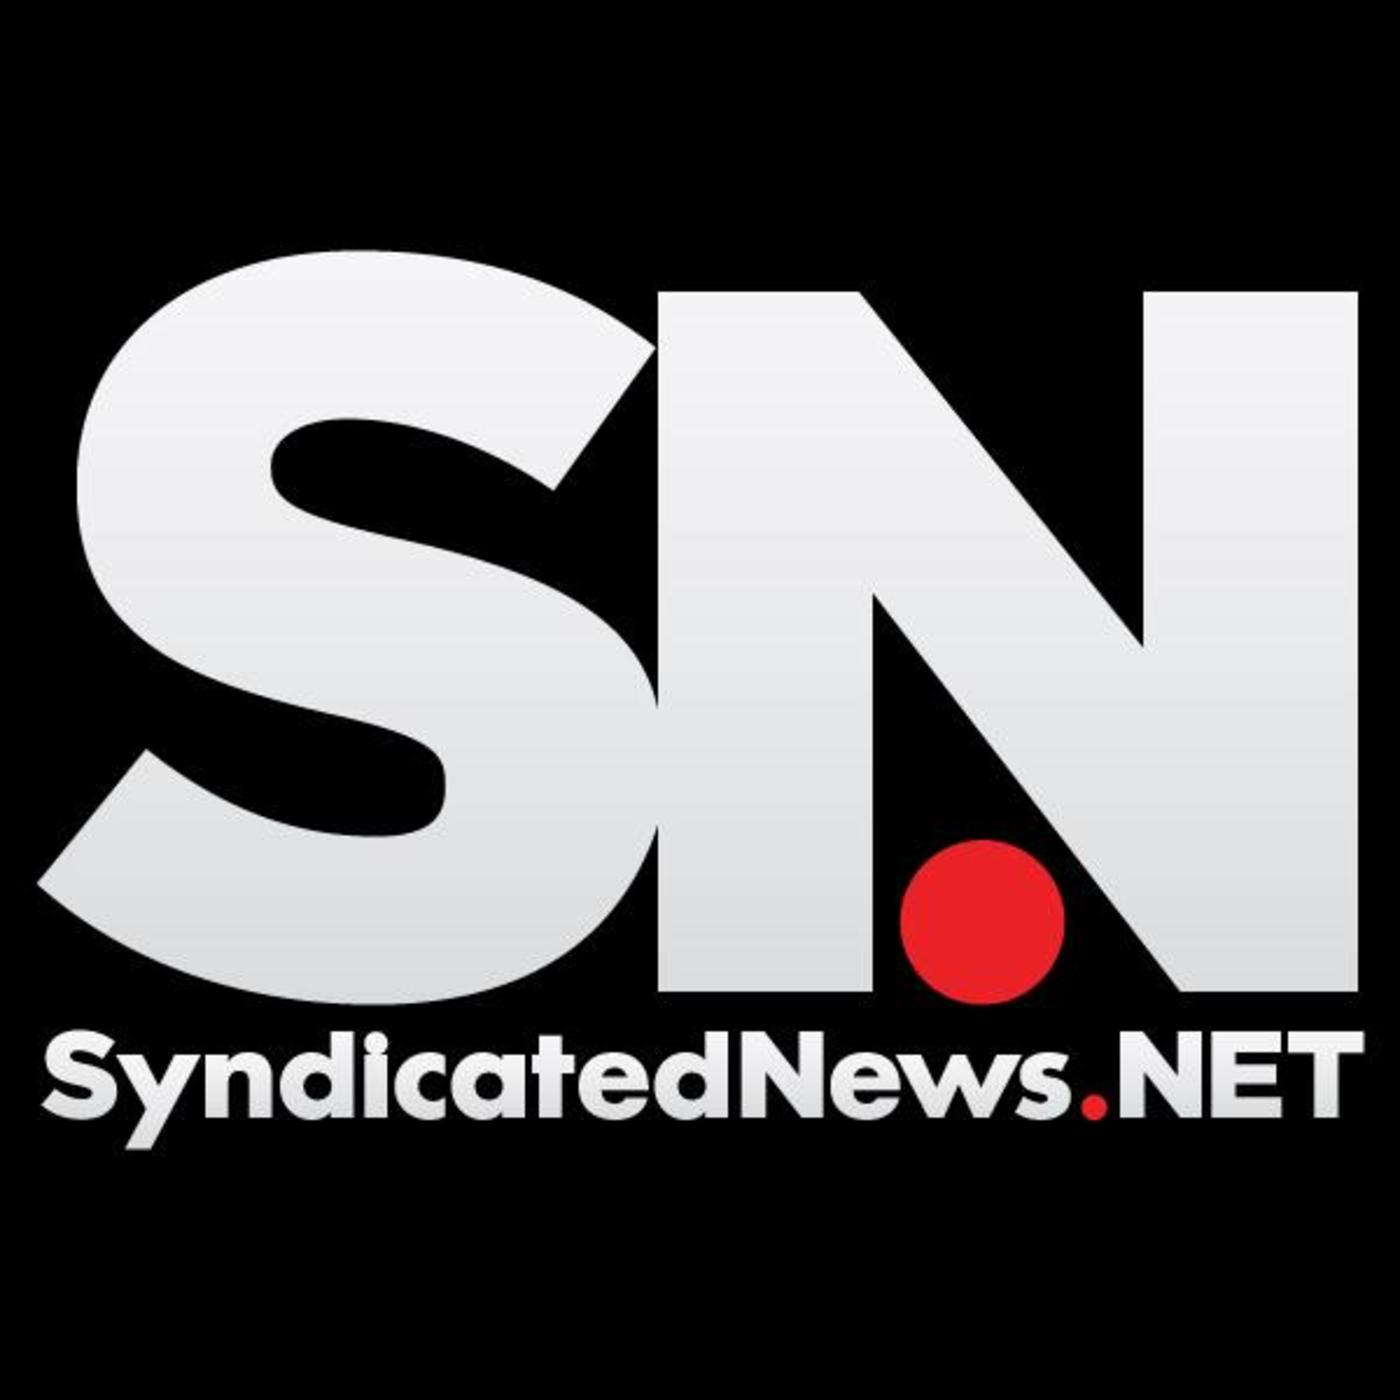 www.SyndicatedNews.NET is our WebPage